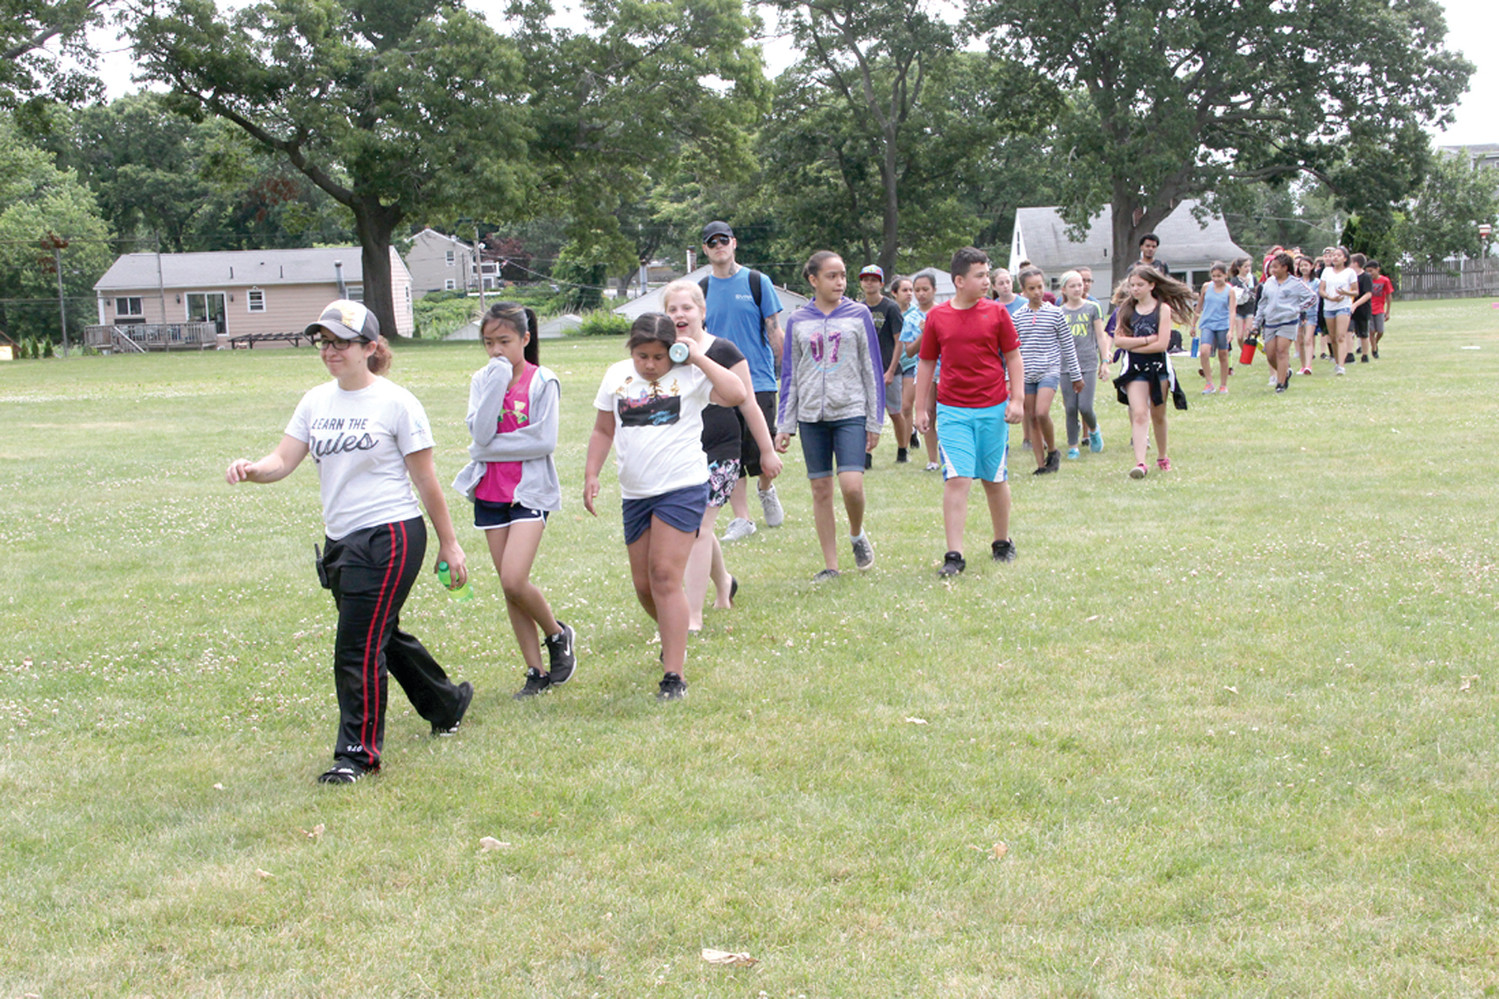 FOLLOW THE LEADER: Camp counselors guide their assigned campers to their next activity once the schedule rotates.